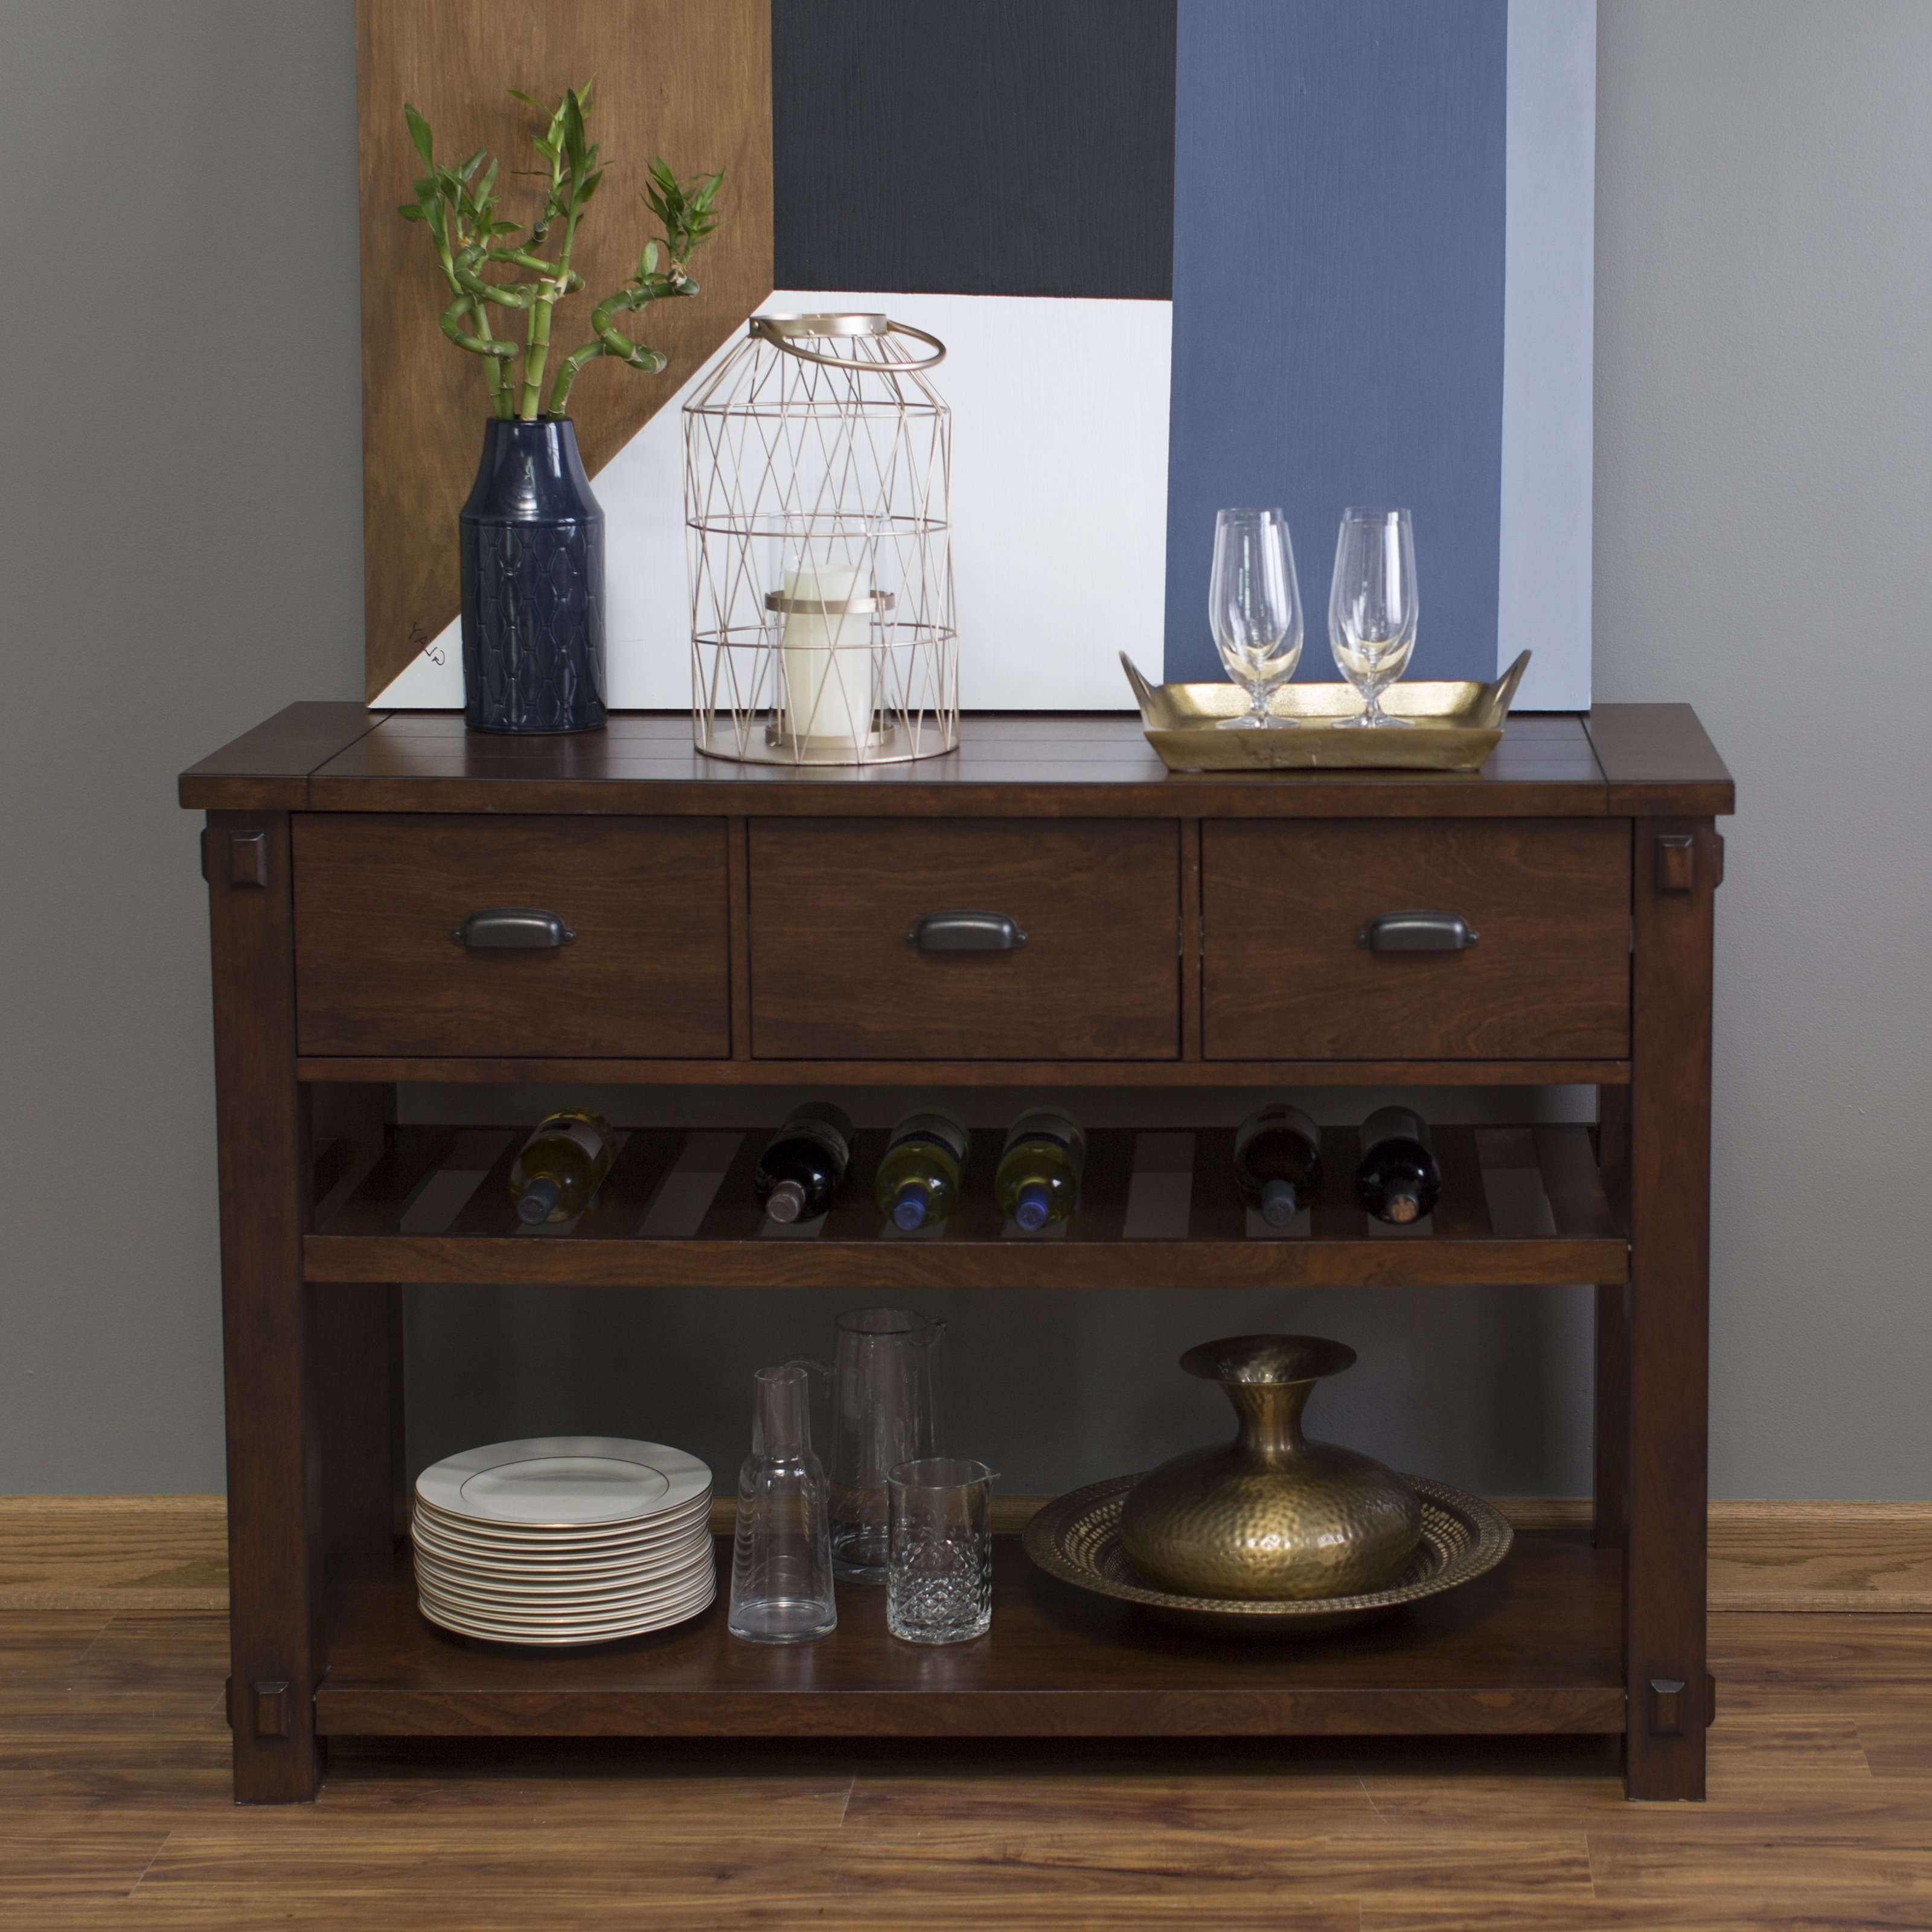 Sideboards & Buffets | Hayneedle Inside Sideboards Buffet Furniture (View 17 of 20)